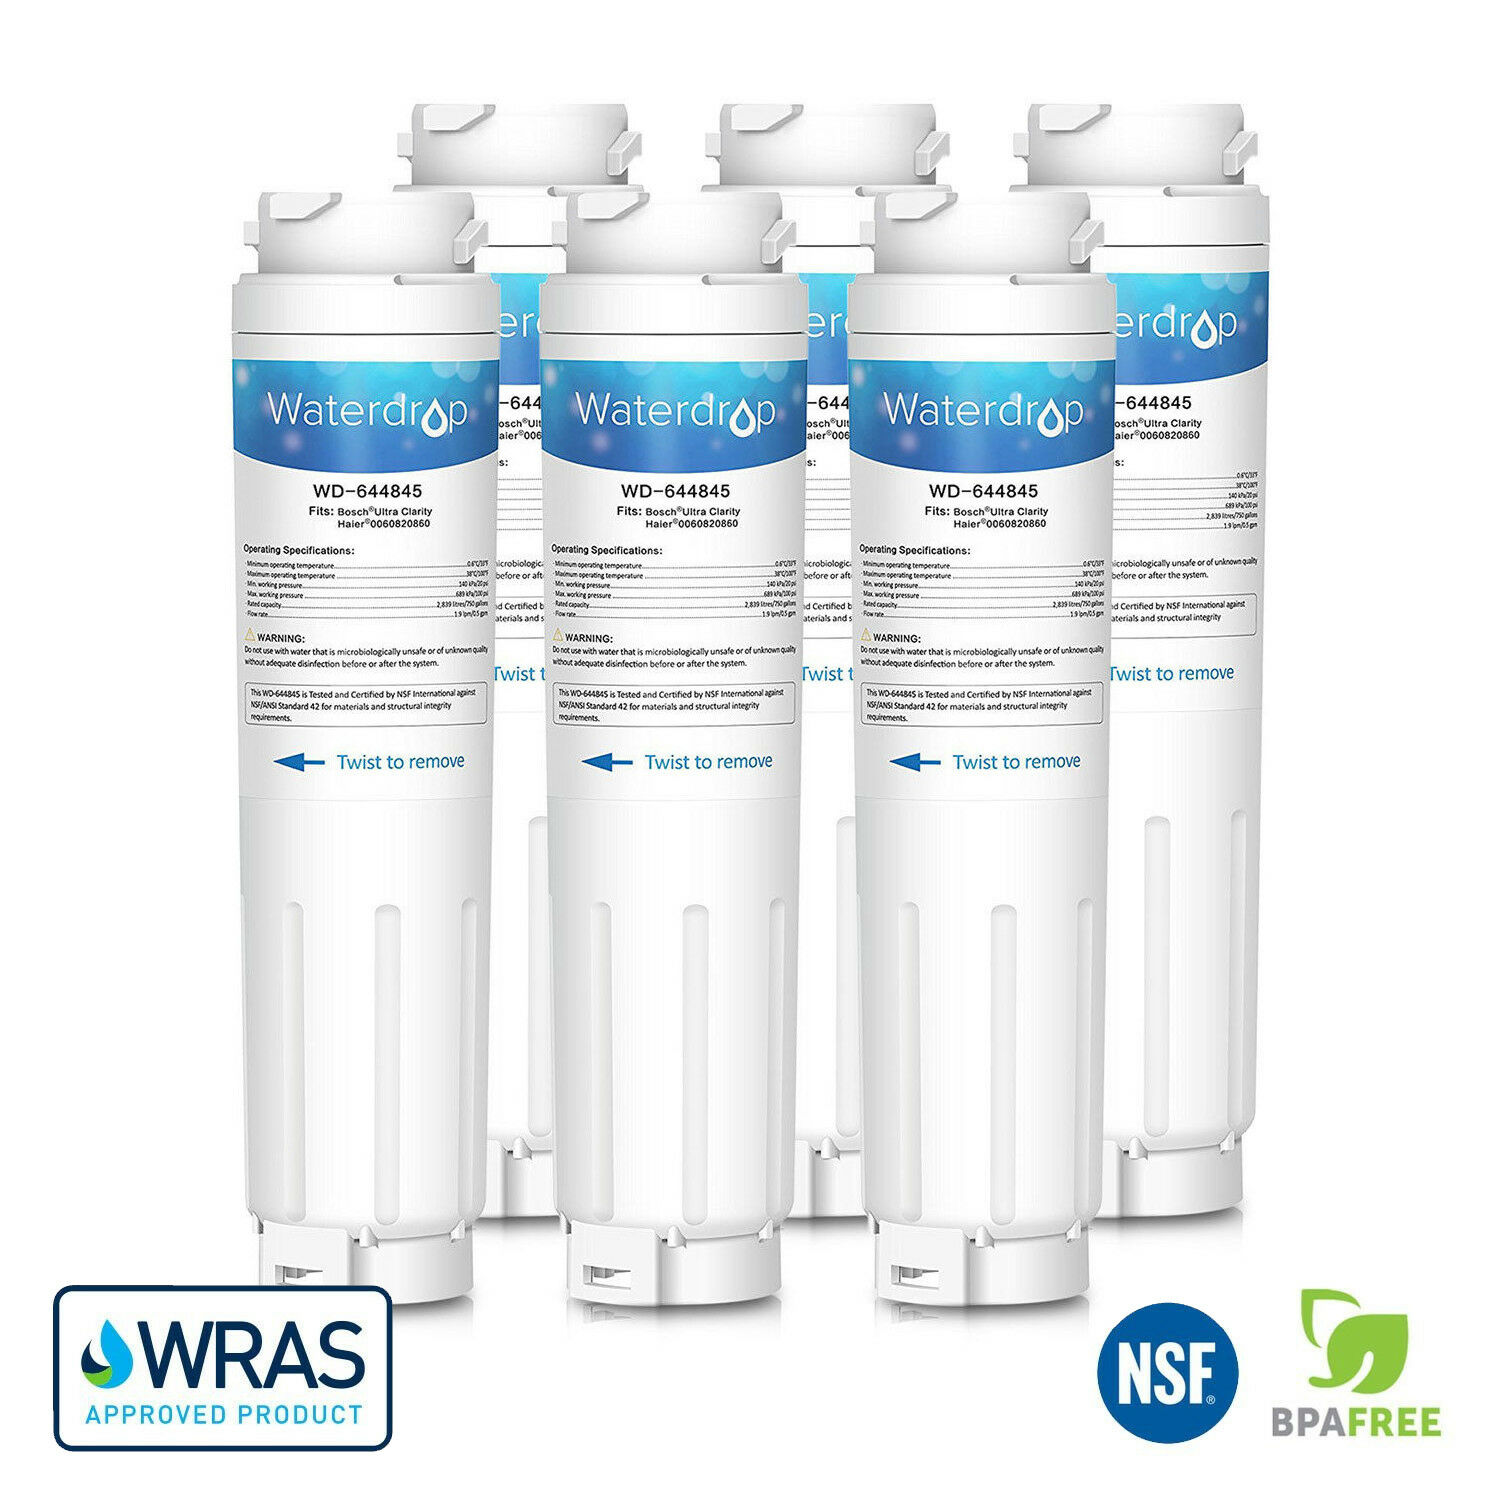 6 x Waterdrop Fridge Fridge Fridge Filter Replacement for UltraClarity BORPLFTR10, RA450010 4d618e